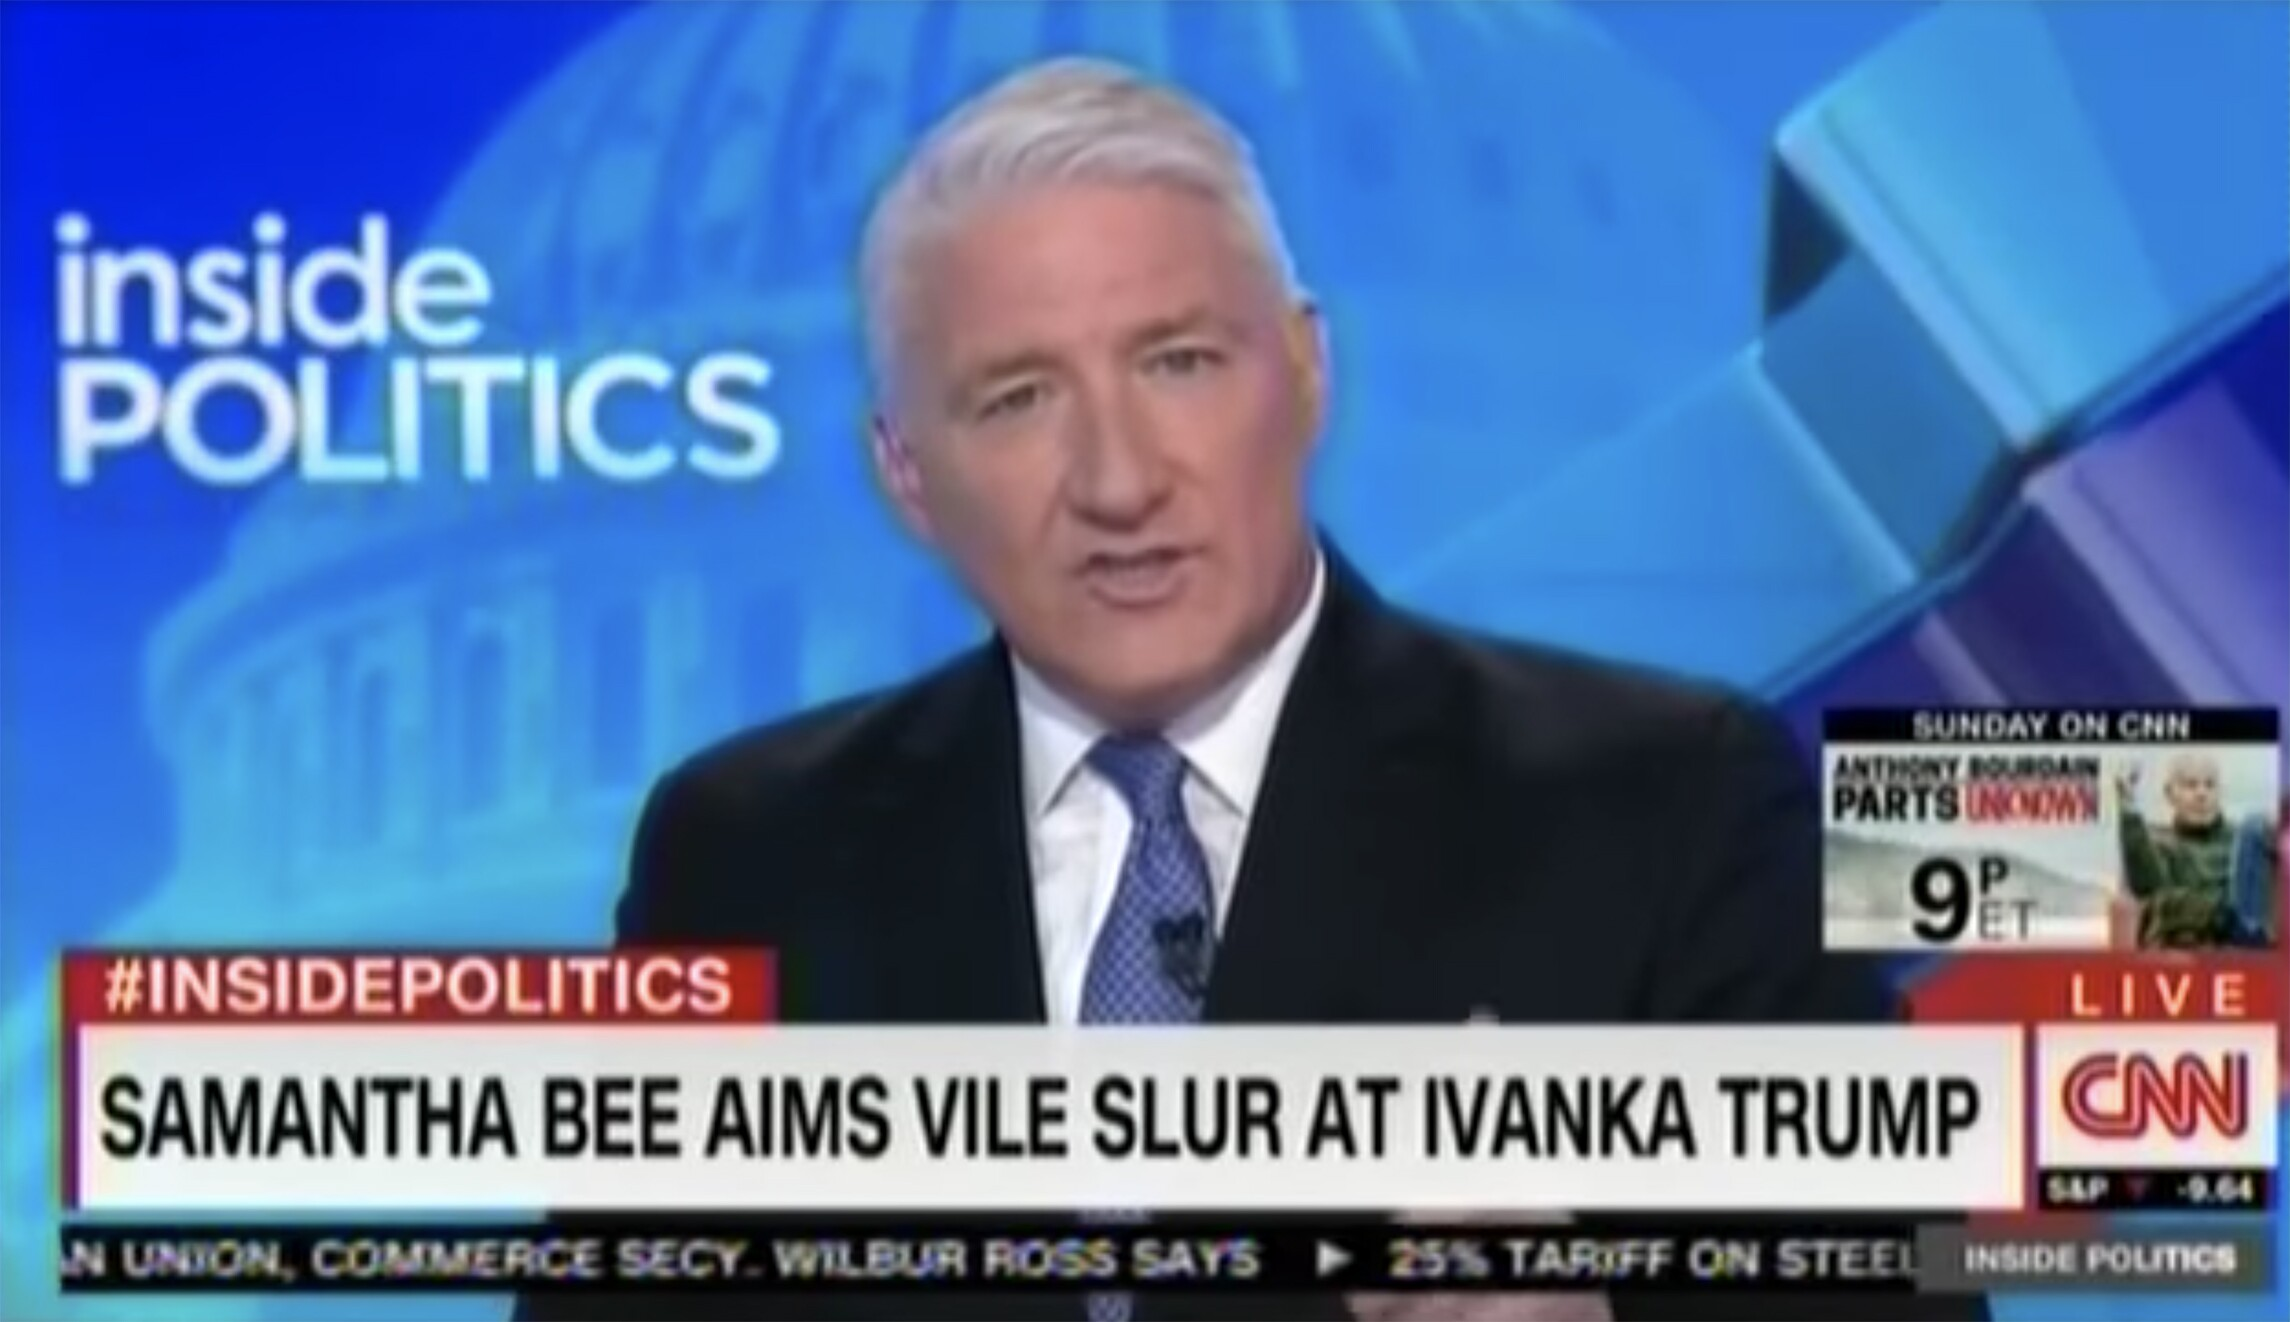 cnn anchor to parent company time warner on samantha bee controversy